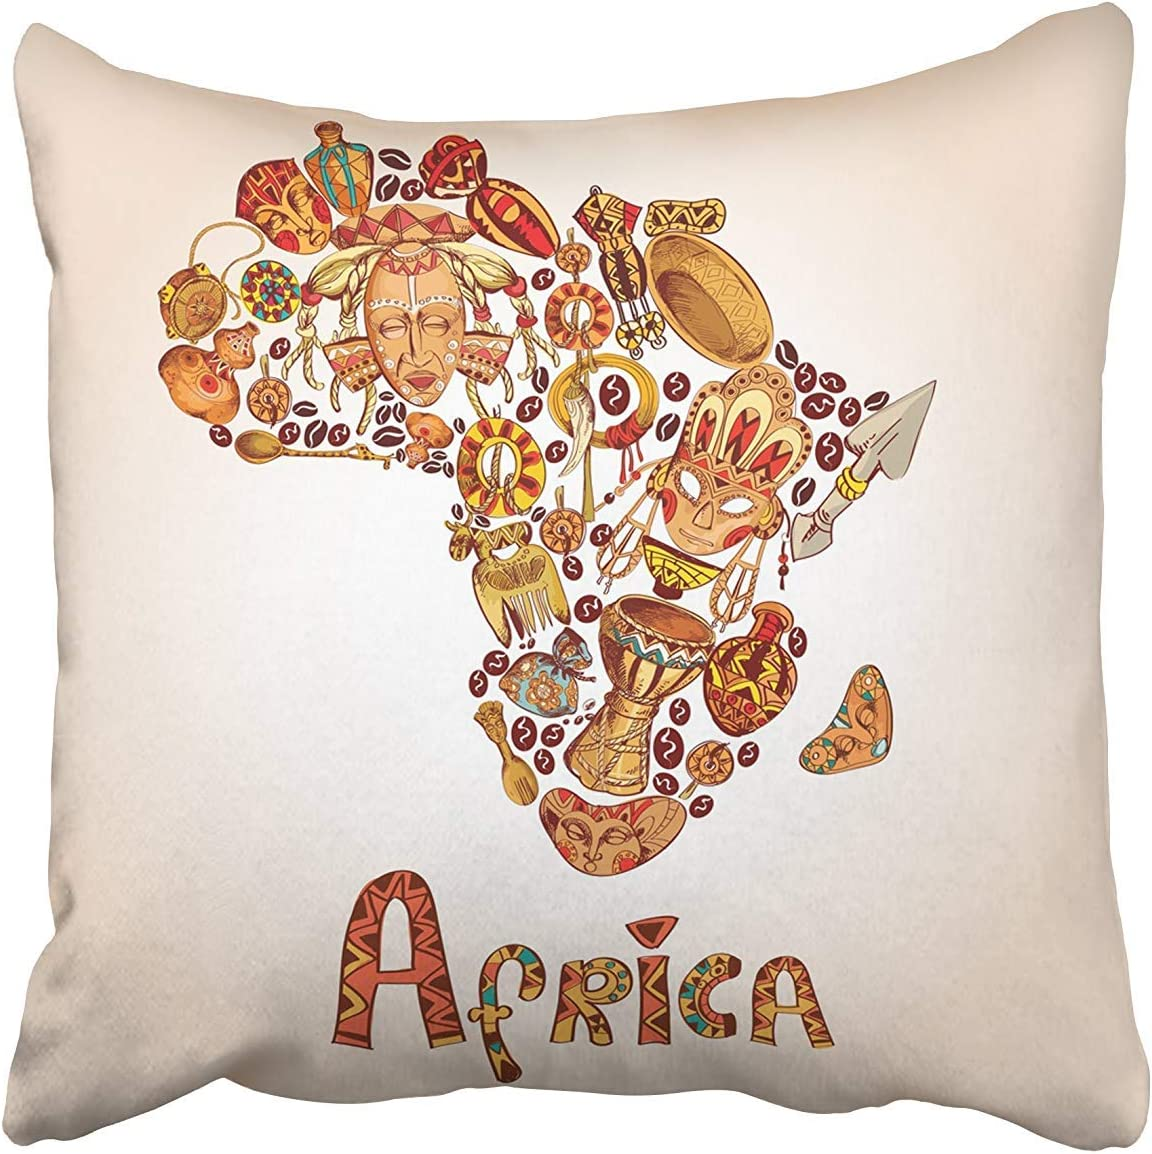 Amazon Com Joocar Face Africa Sketch In African Continent Shape Travel Concept Drum Oasis Sahara South Cotton Pillow Cover Decorative Home Decor Square Indoor Outdoor Pillowcase Size 26x26 Inch Two Sides Home Kitchen